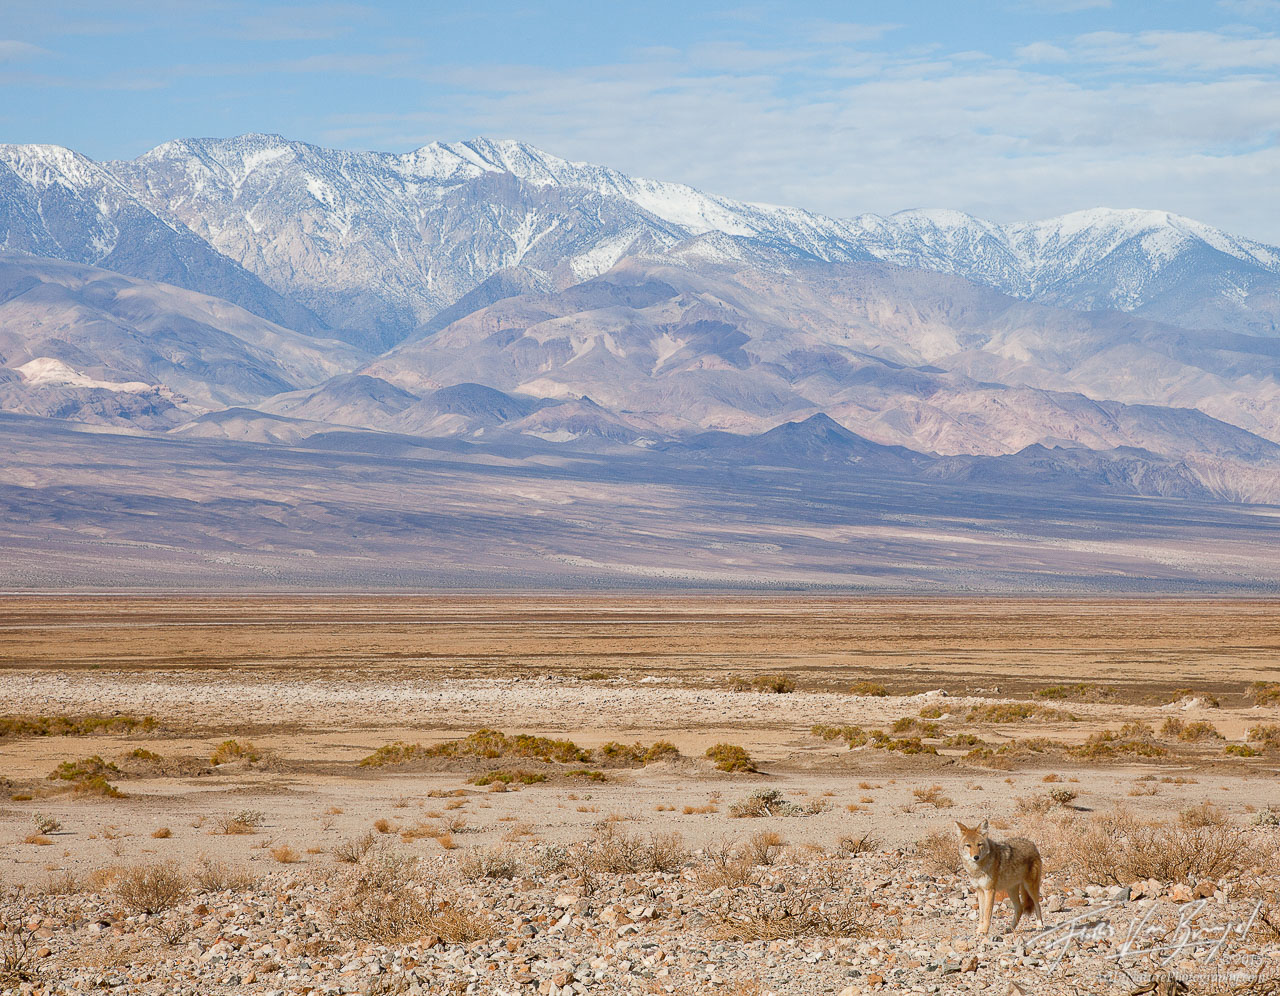 Coyote, Death Valley National Park, Telescope Peak, photo